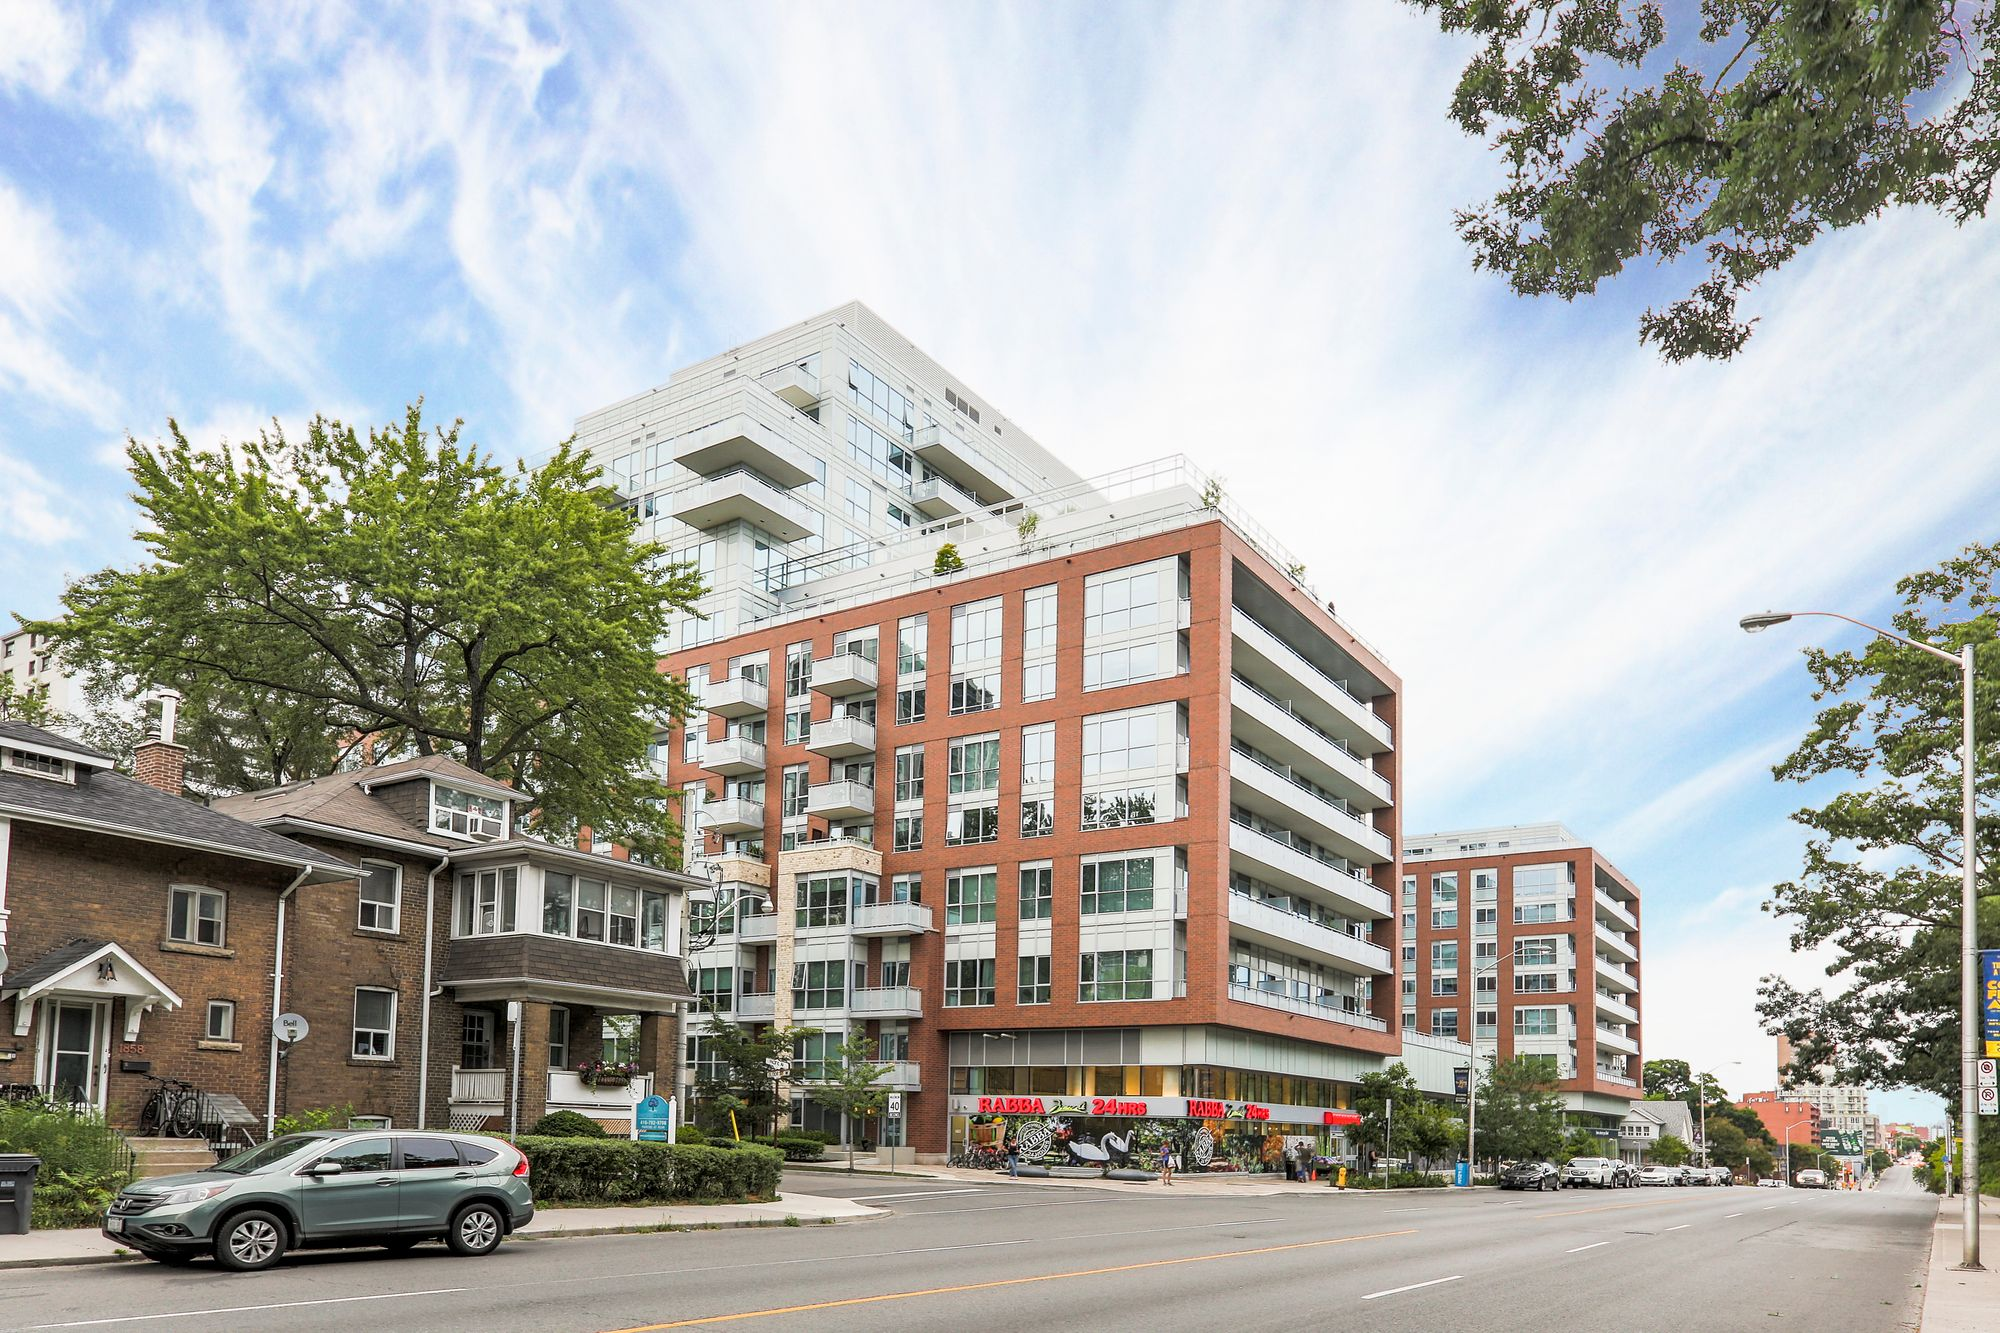 High Park Residences at 1830 Bloor St W. This condo is located in  West End, Toronto - image #1 of 8 by Strata.ca